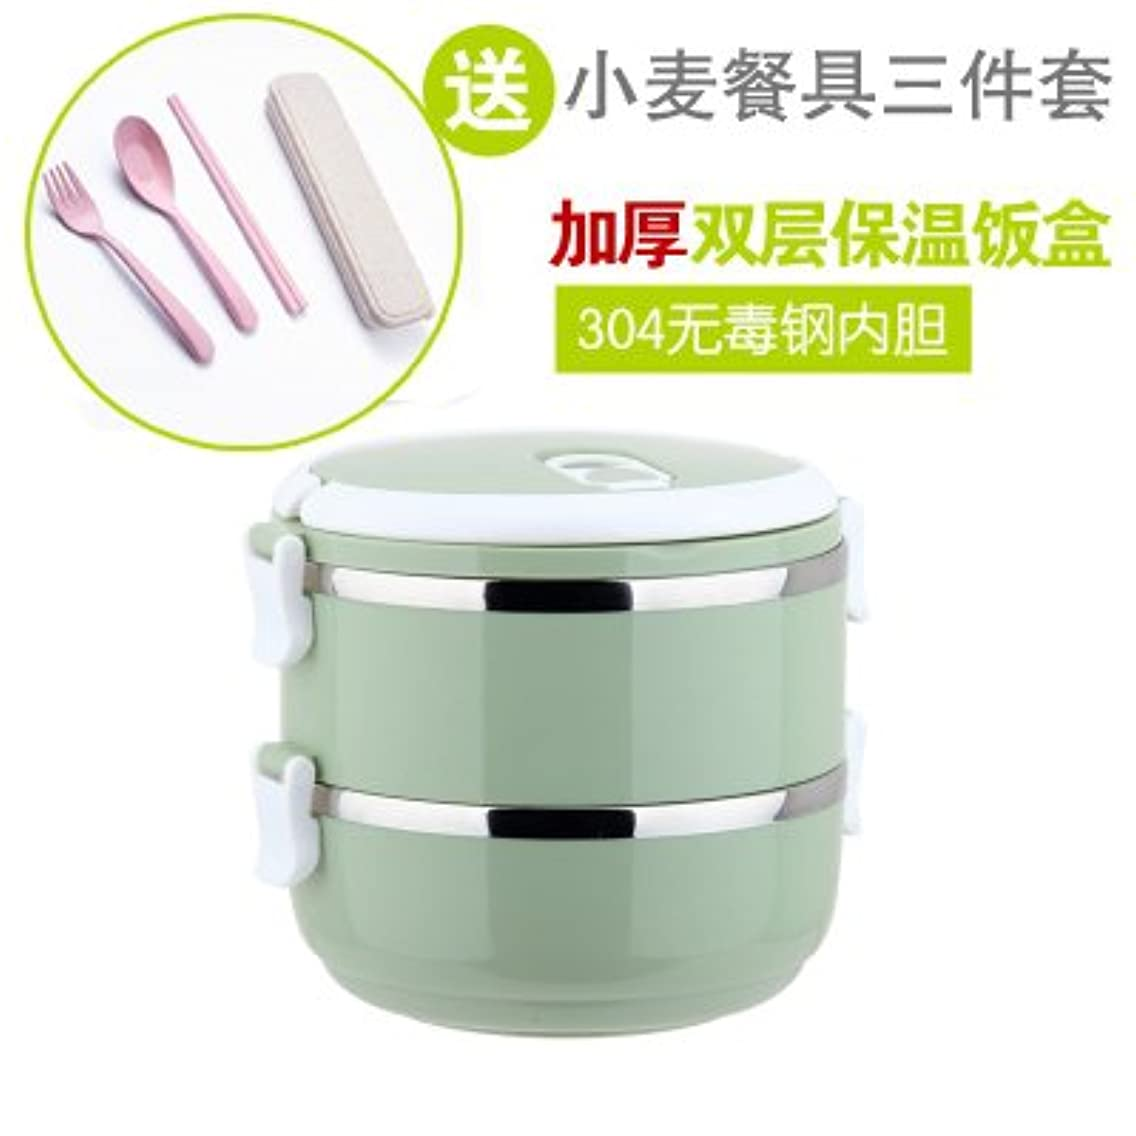 Luckyfree Lunch Boxs Containers 597 Stainless Steel With Compartments Bento Box For Students Adults Children Picnic Food Container Stainless steel Stainless Steel, Green 2-Tier Dish